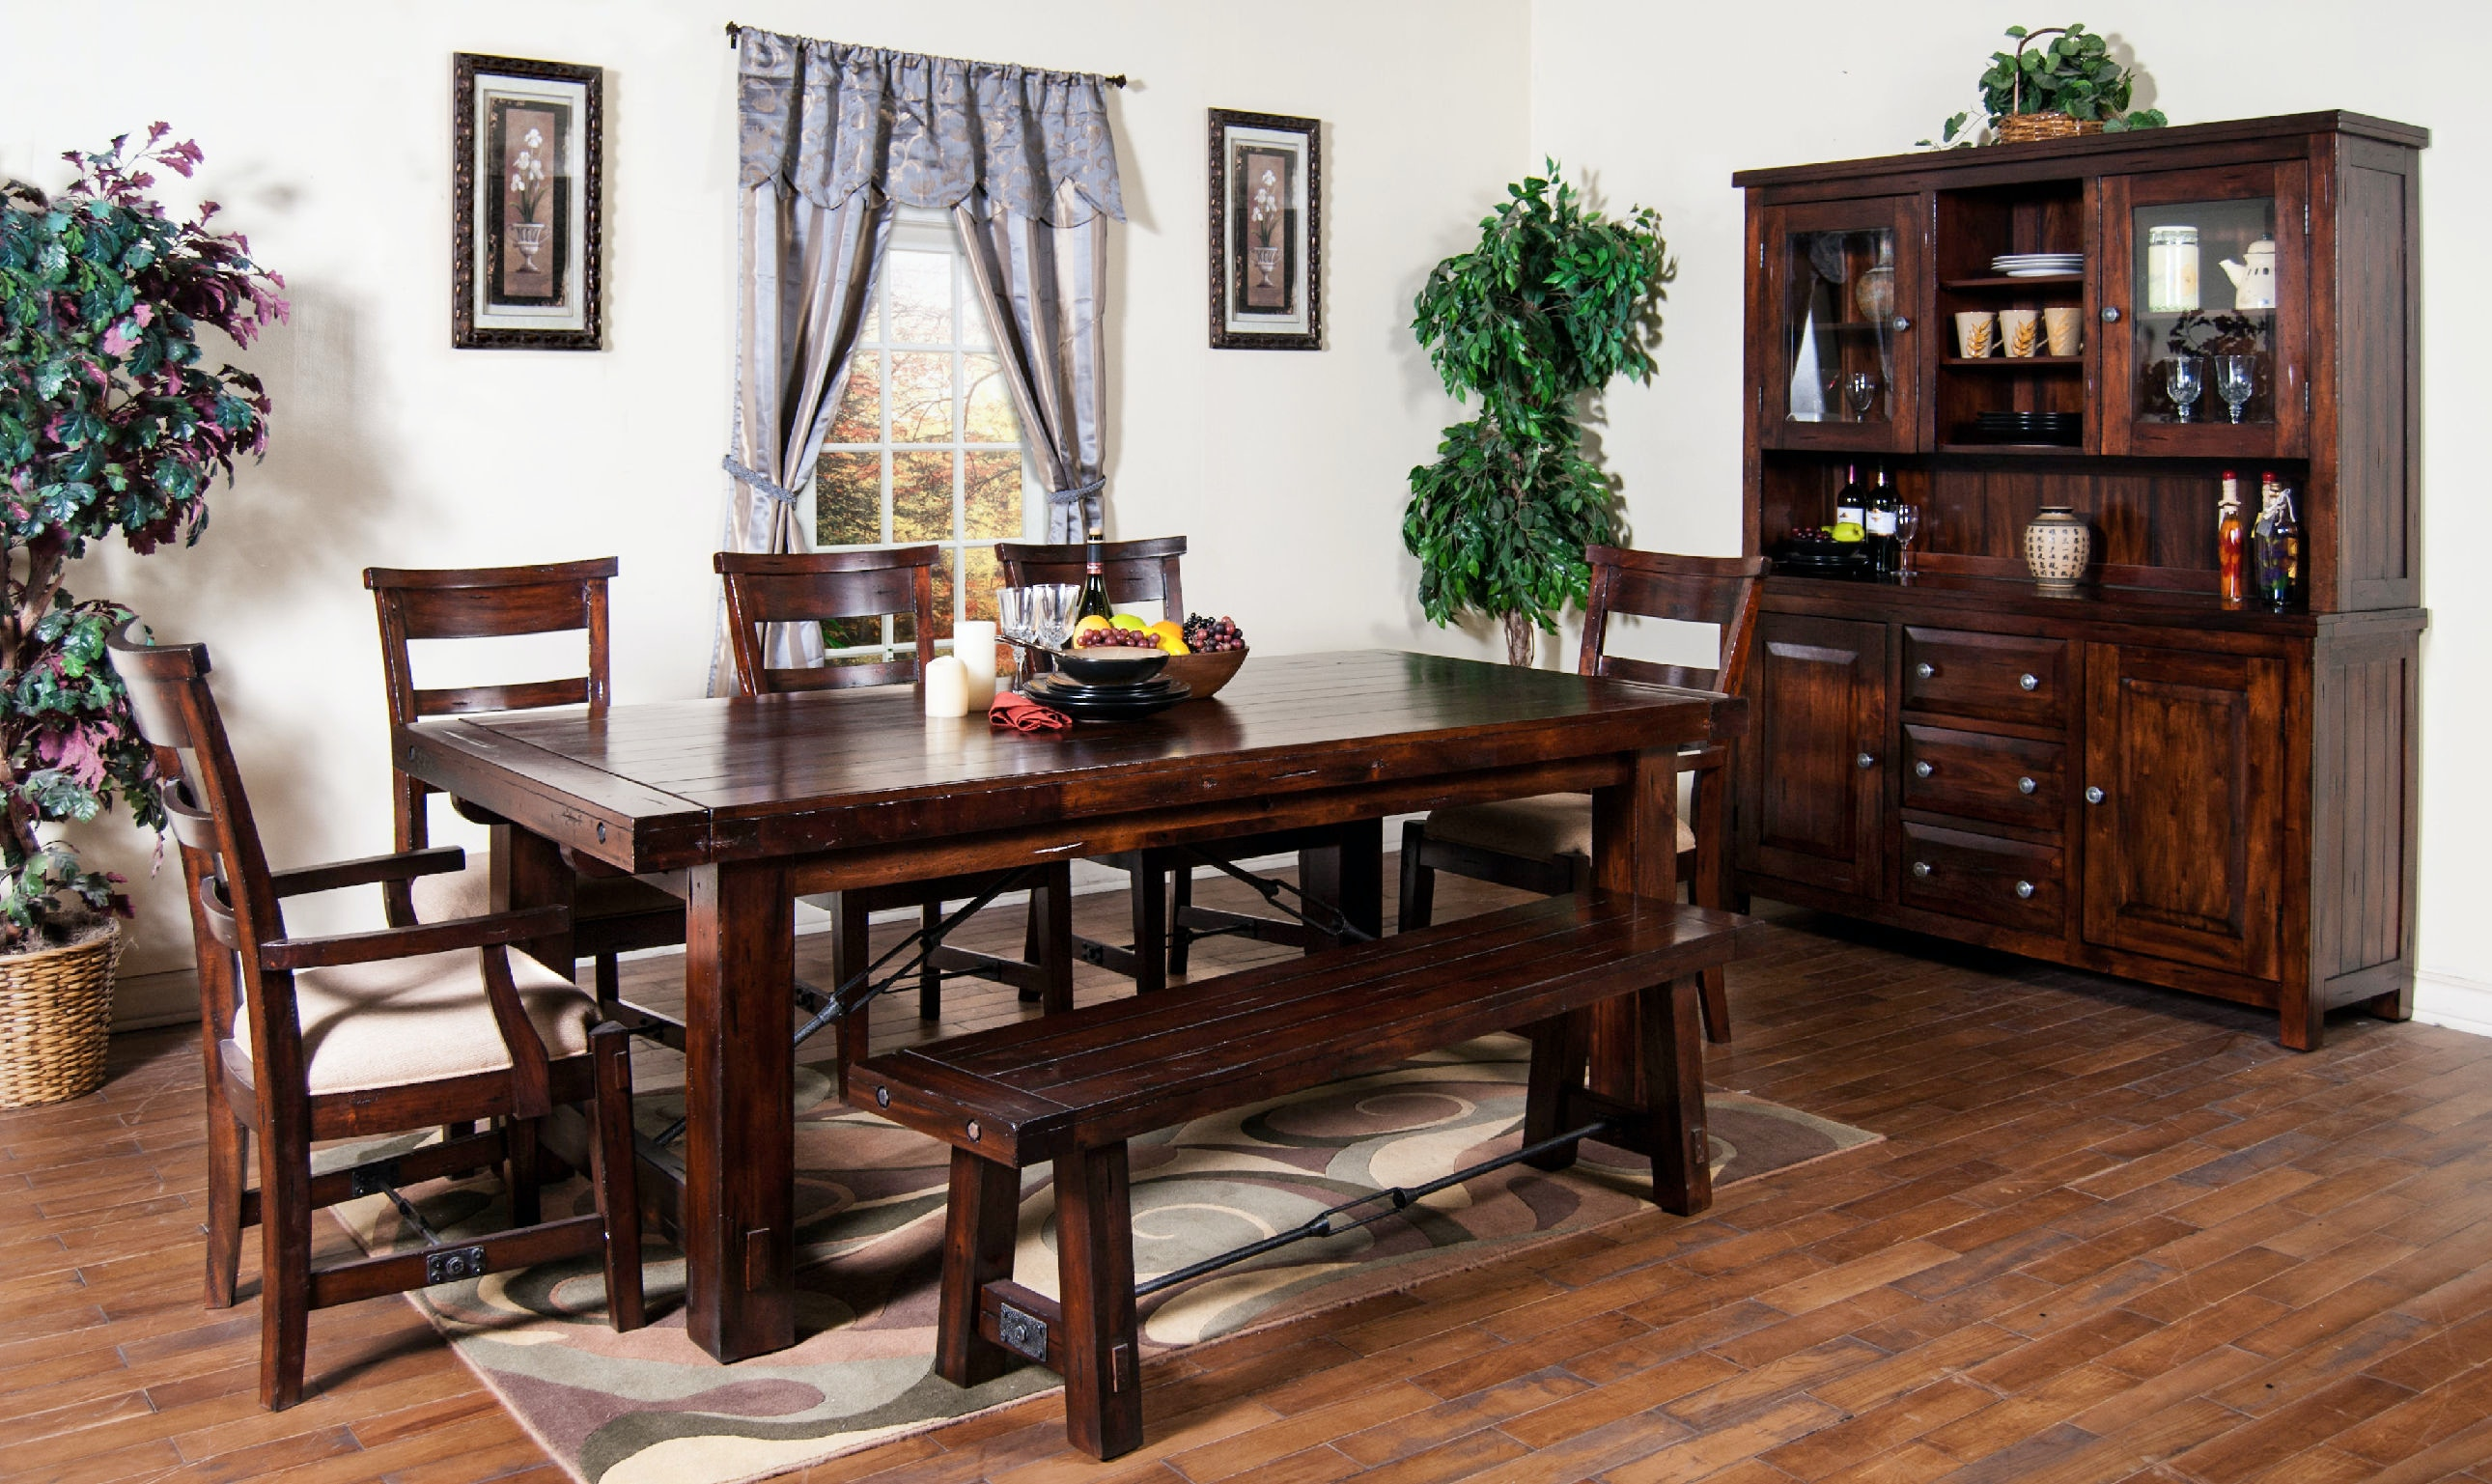 Sunny Designs Dining Room Vineyard Extension Table 1316RM  : 1316rm2c1604rm2c1605rm2c1615rm2c2428rm 2 from www.gerbersfurniture.com size 768 x 576 jpeg 67kB